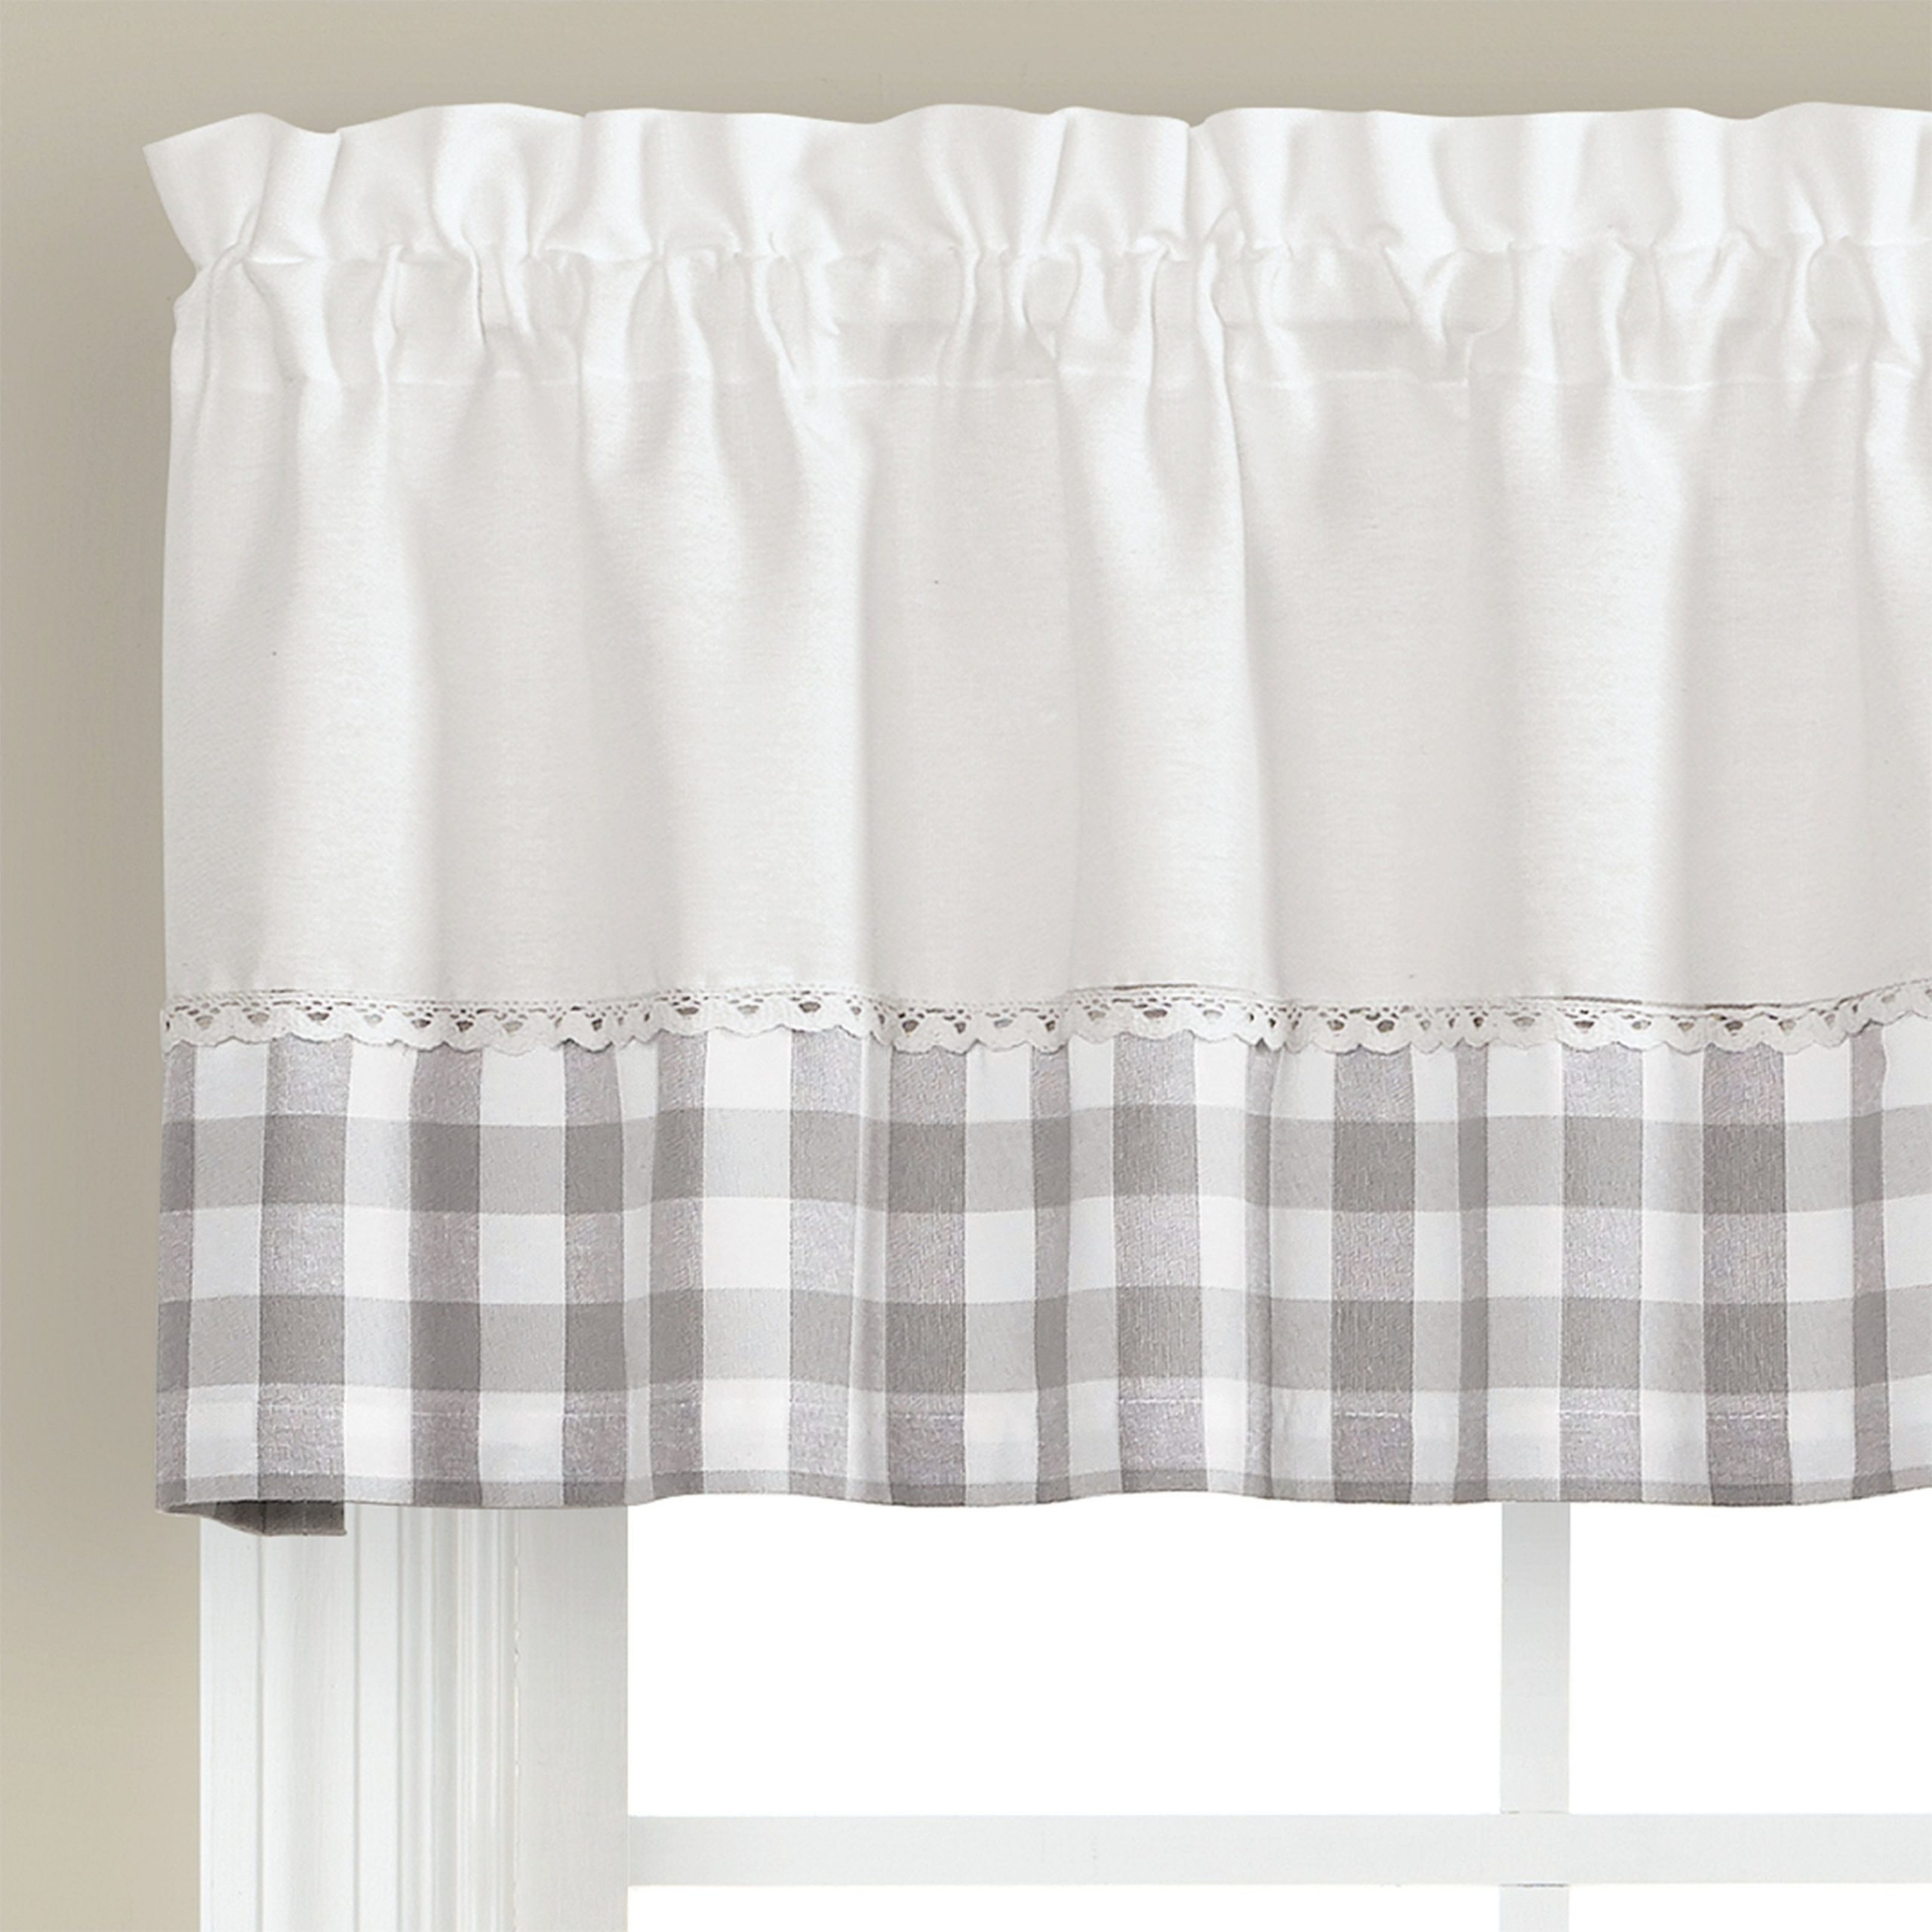 Skl Home Cumberland 13 Inch Valance In Dove Gray Within Cumberland Tier Pairs In Dove Gray (View 12 of 20)